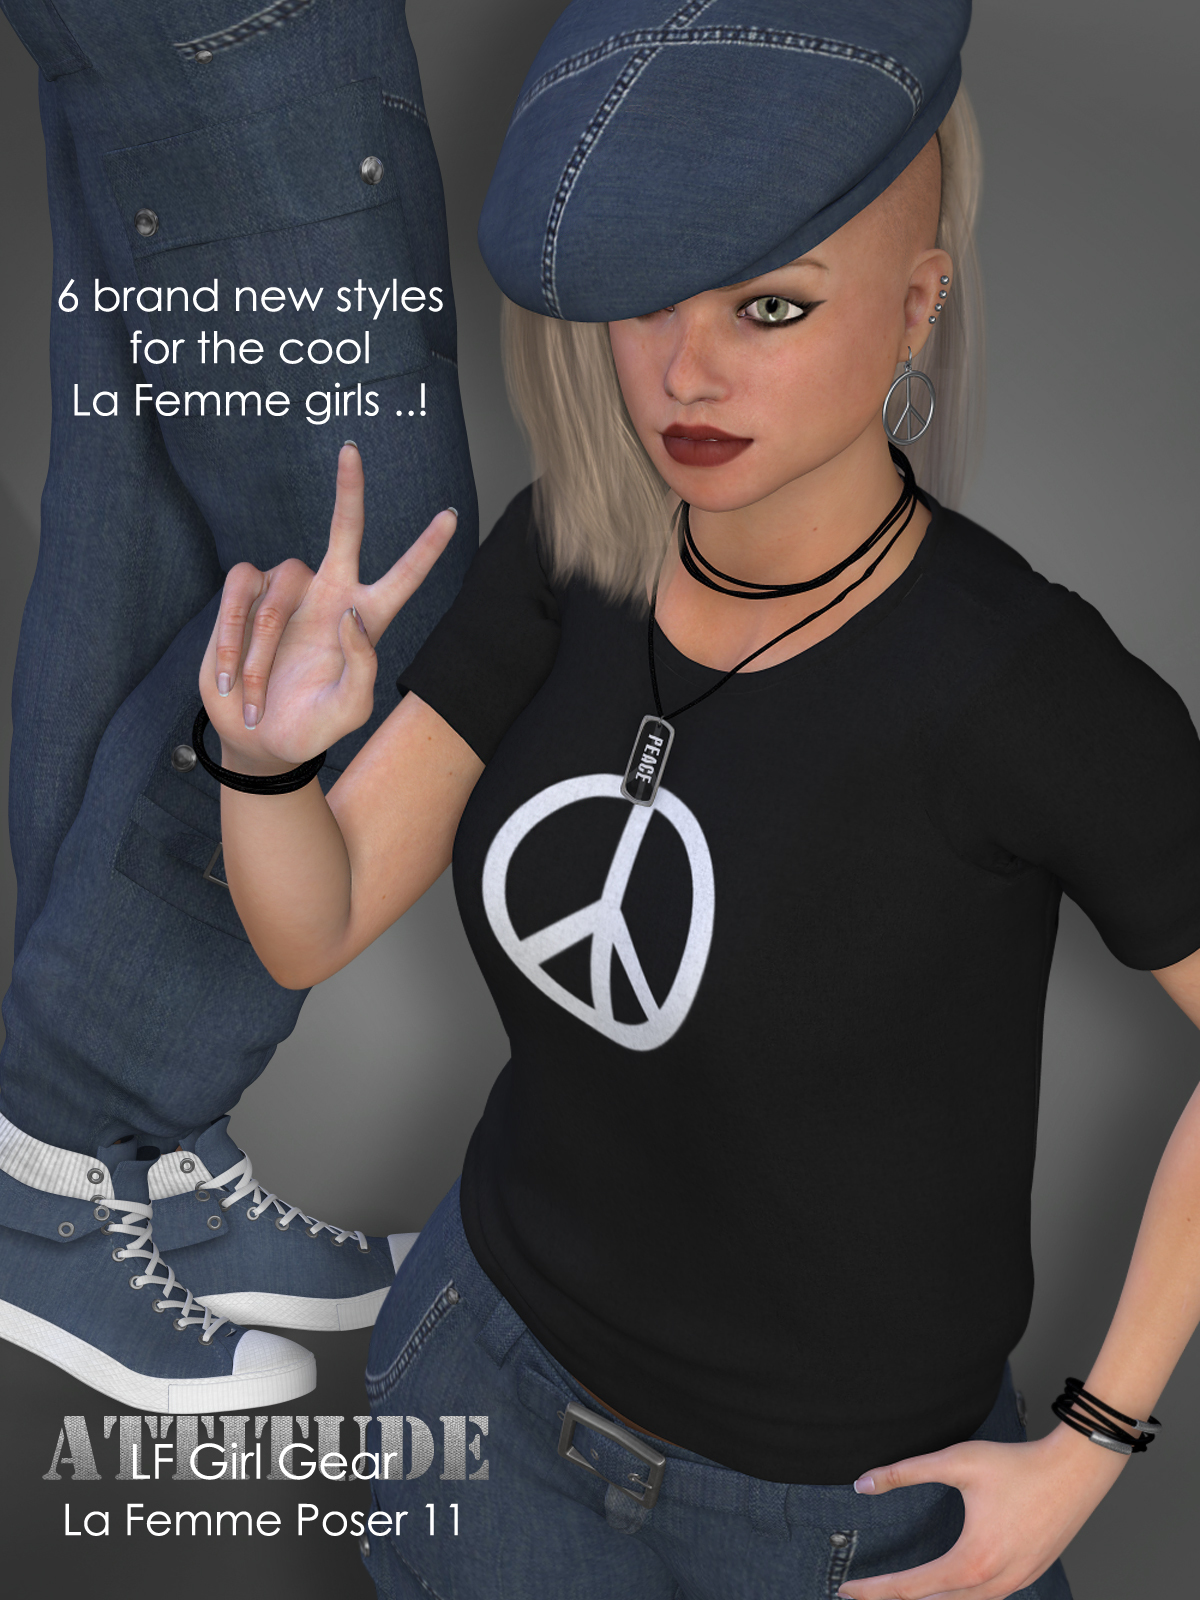 Attitude - RP Girl Gear for La Femme  and L'Homme by RPublishing